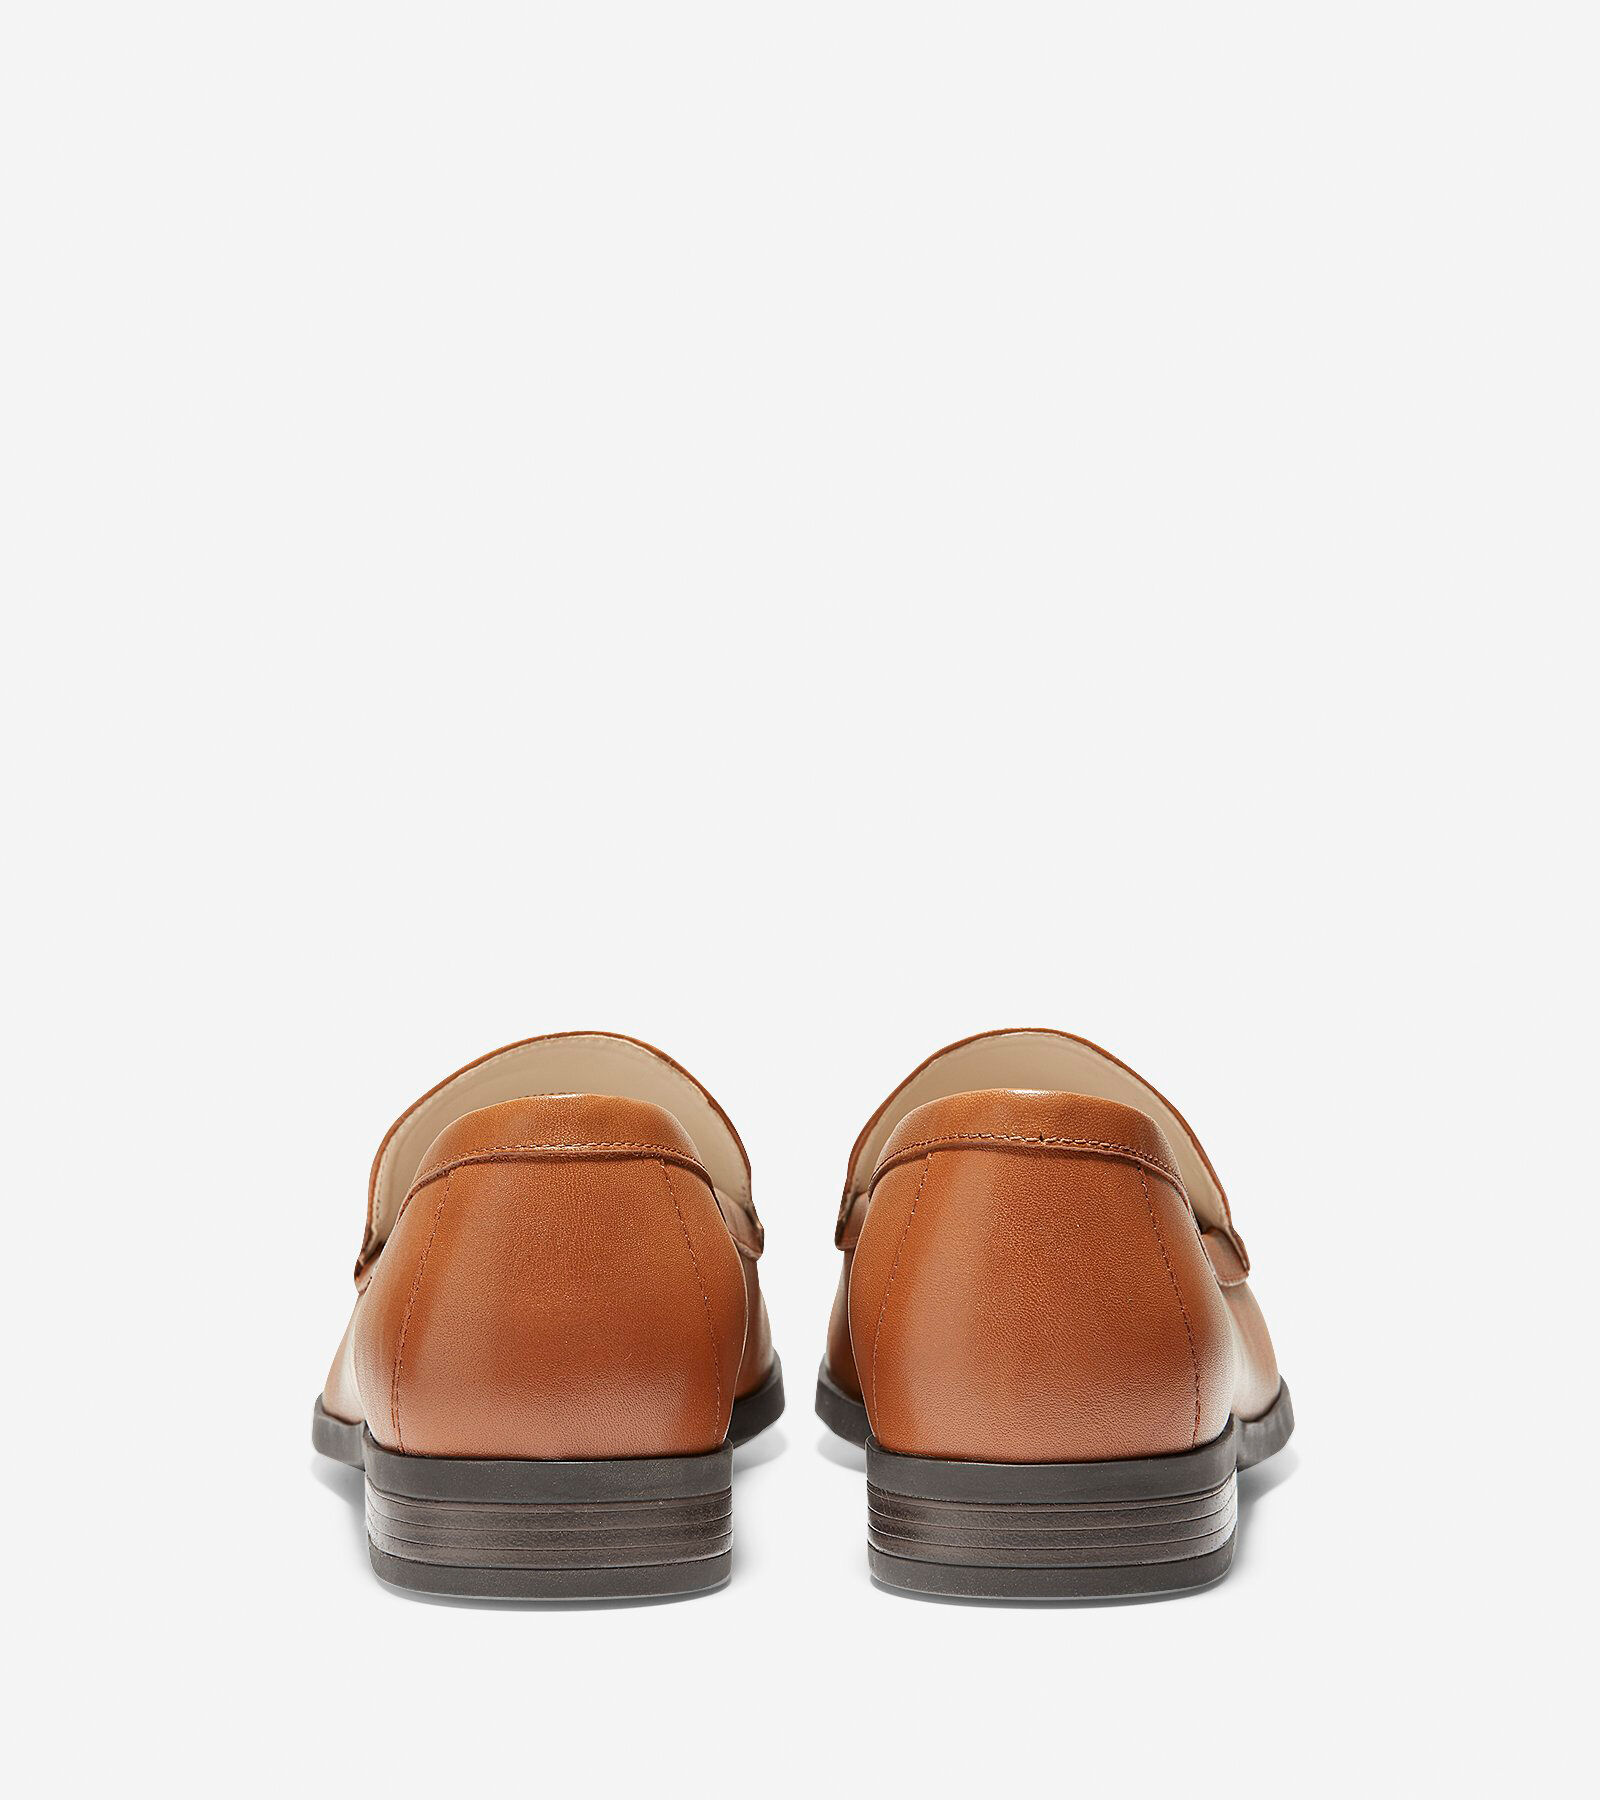 eb3d4221a1f Womens pinch lobster loafers in british tan cole haan jpg 2000x2250 Tan  womens loafers